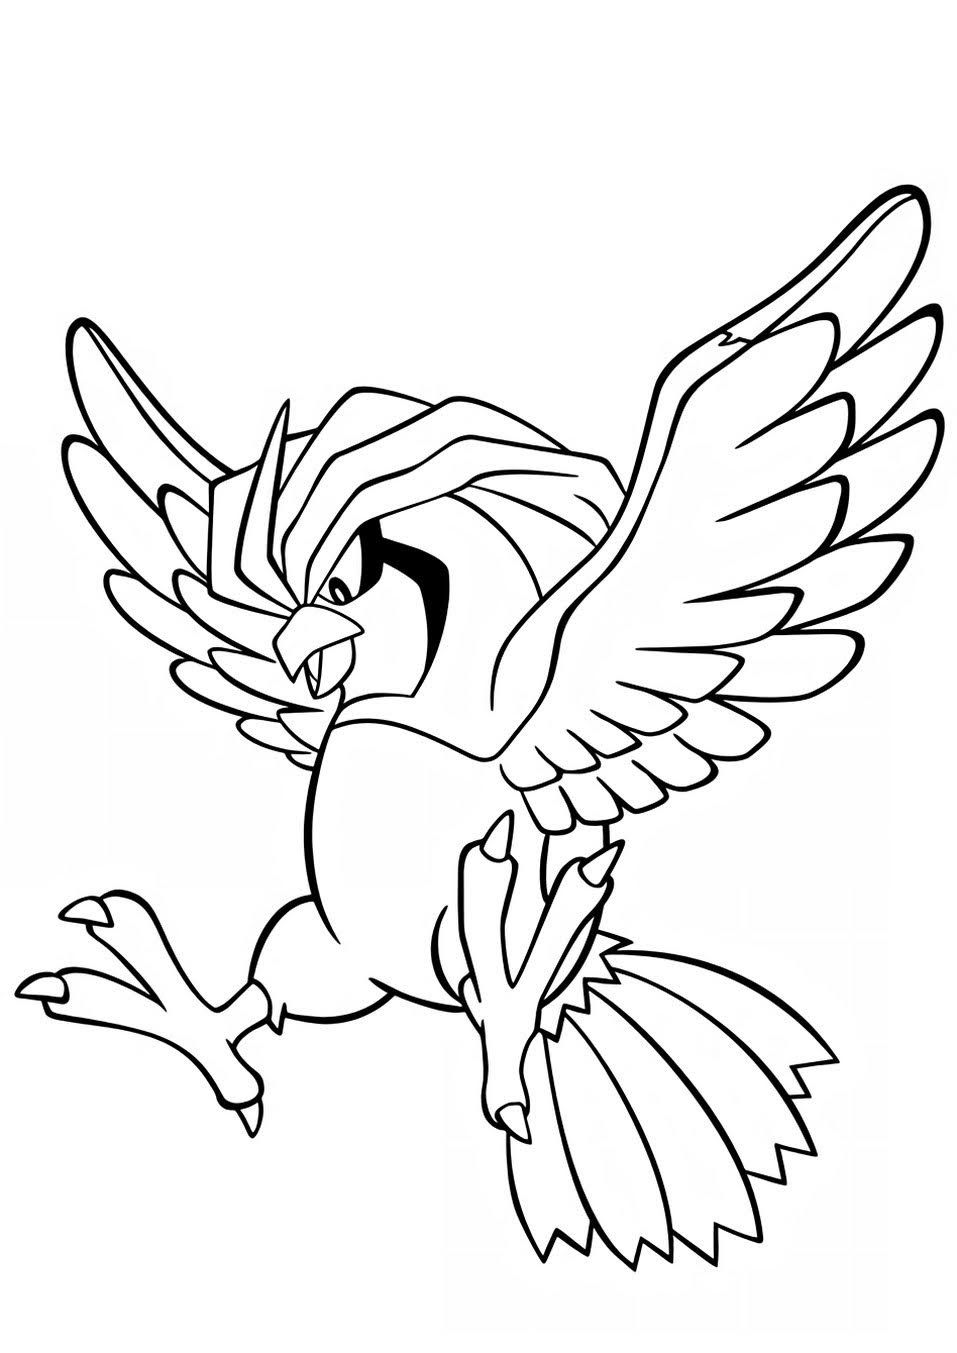 Cute Pidgeotto Pokemon Go Coloring Pages Coloring Pages Pokemon Coloring Pages Pokemon Printables